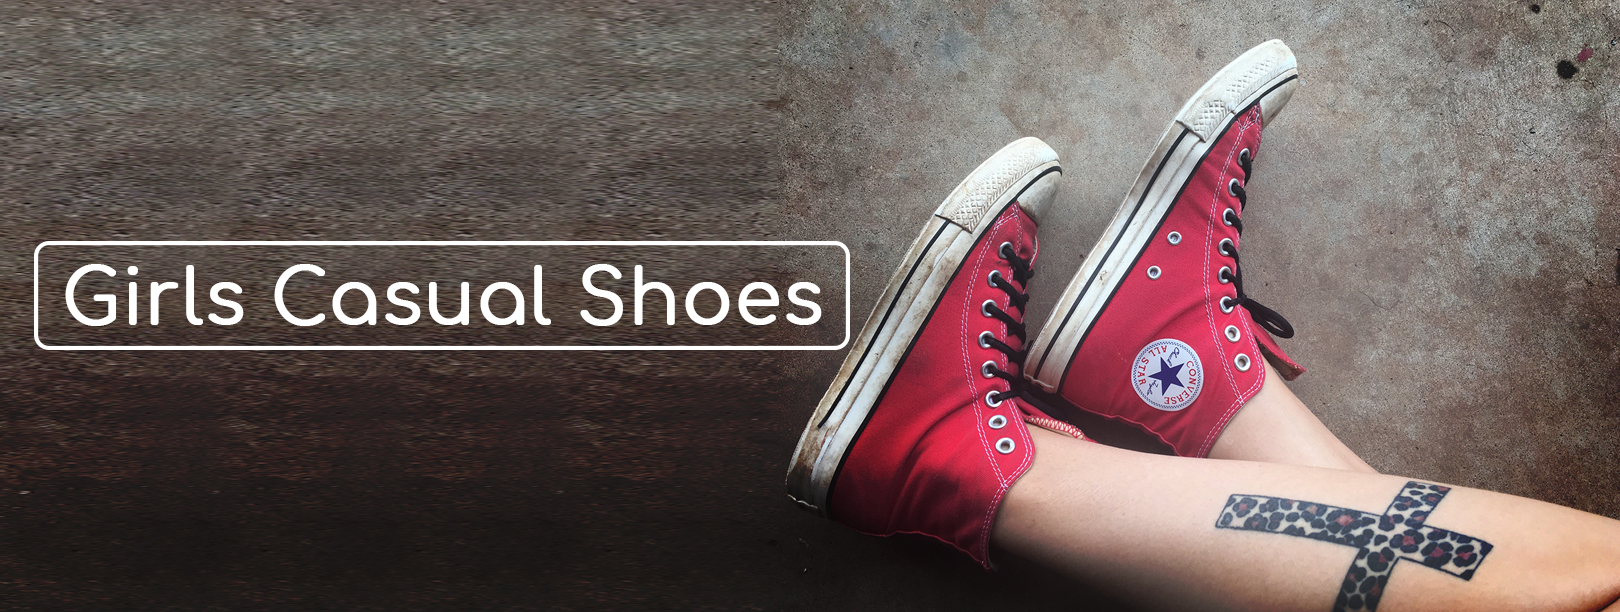 Myntra Girls Casual Shoes